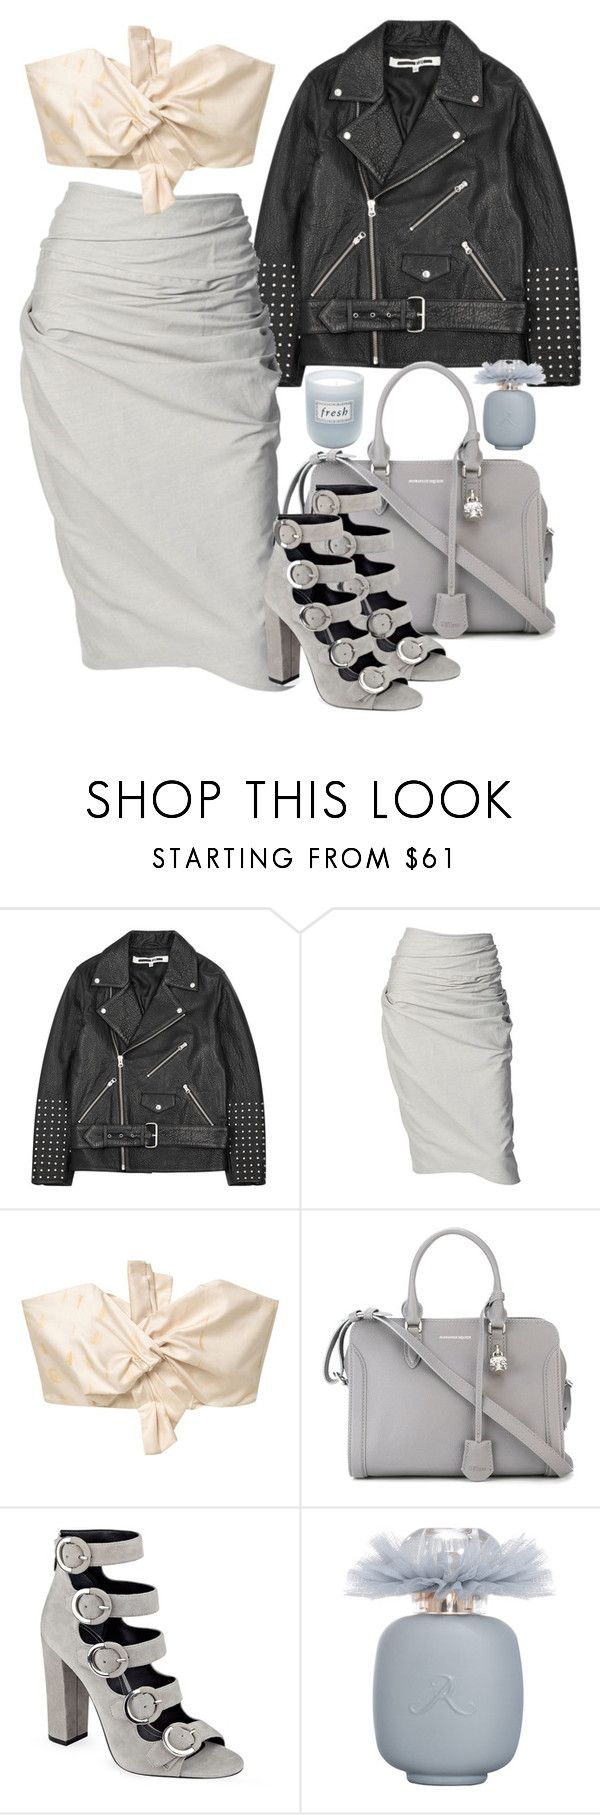 """sundae week"" by chloe-ja-br ❤ liked on Polyvore featuring McQ by Alexander McQueen, Donna Karan, MANGO, Alexander McQueen, Kendall + Kylie, Les Parfums De Rosine and Fresh"